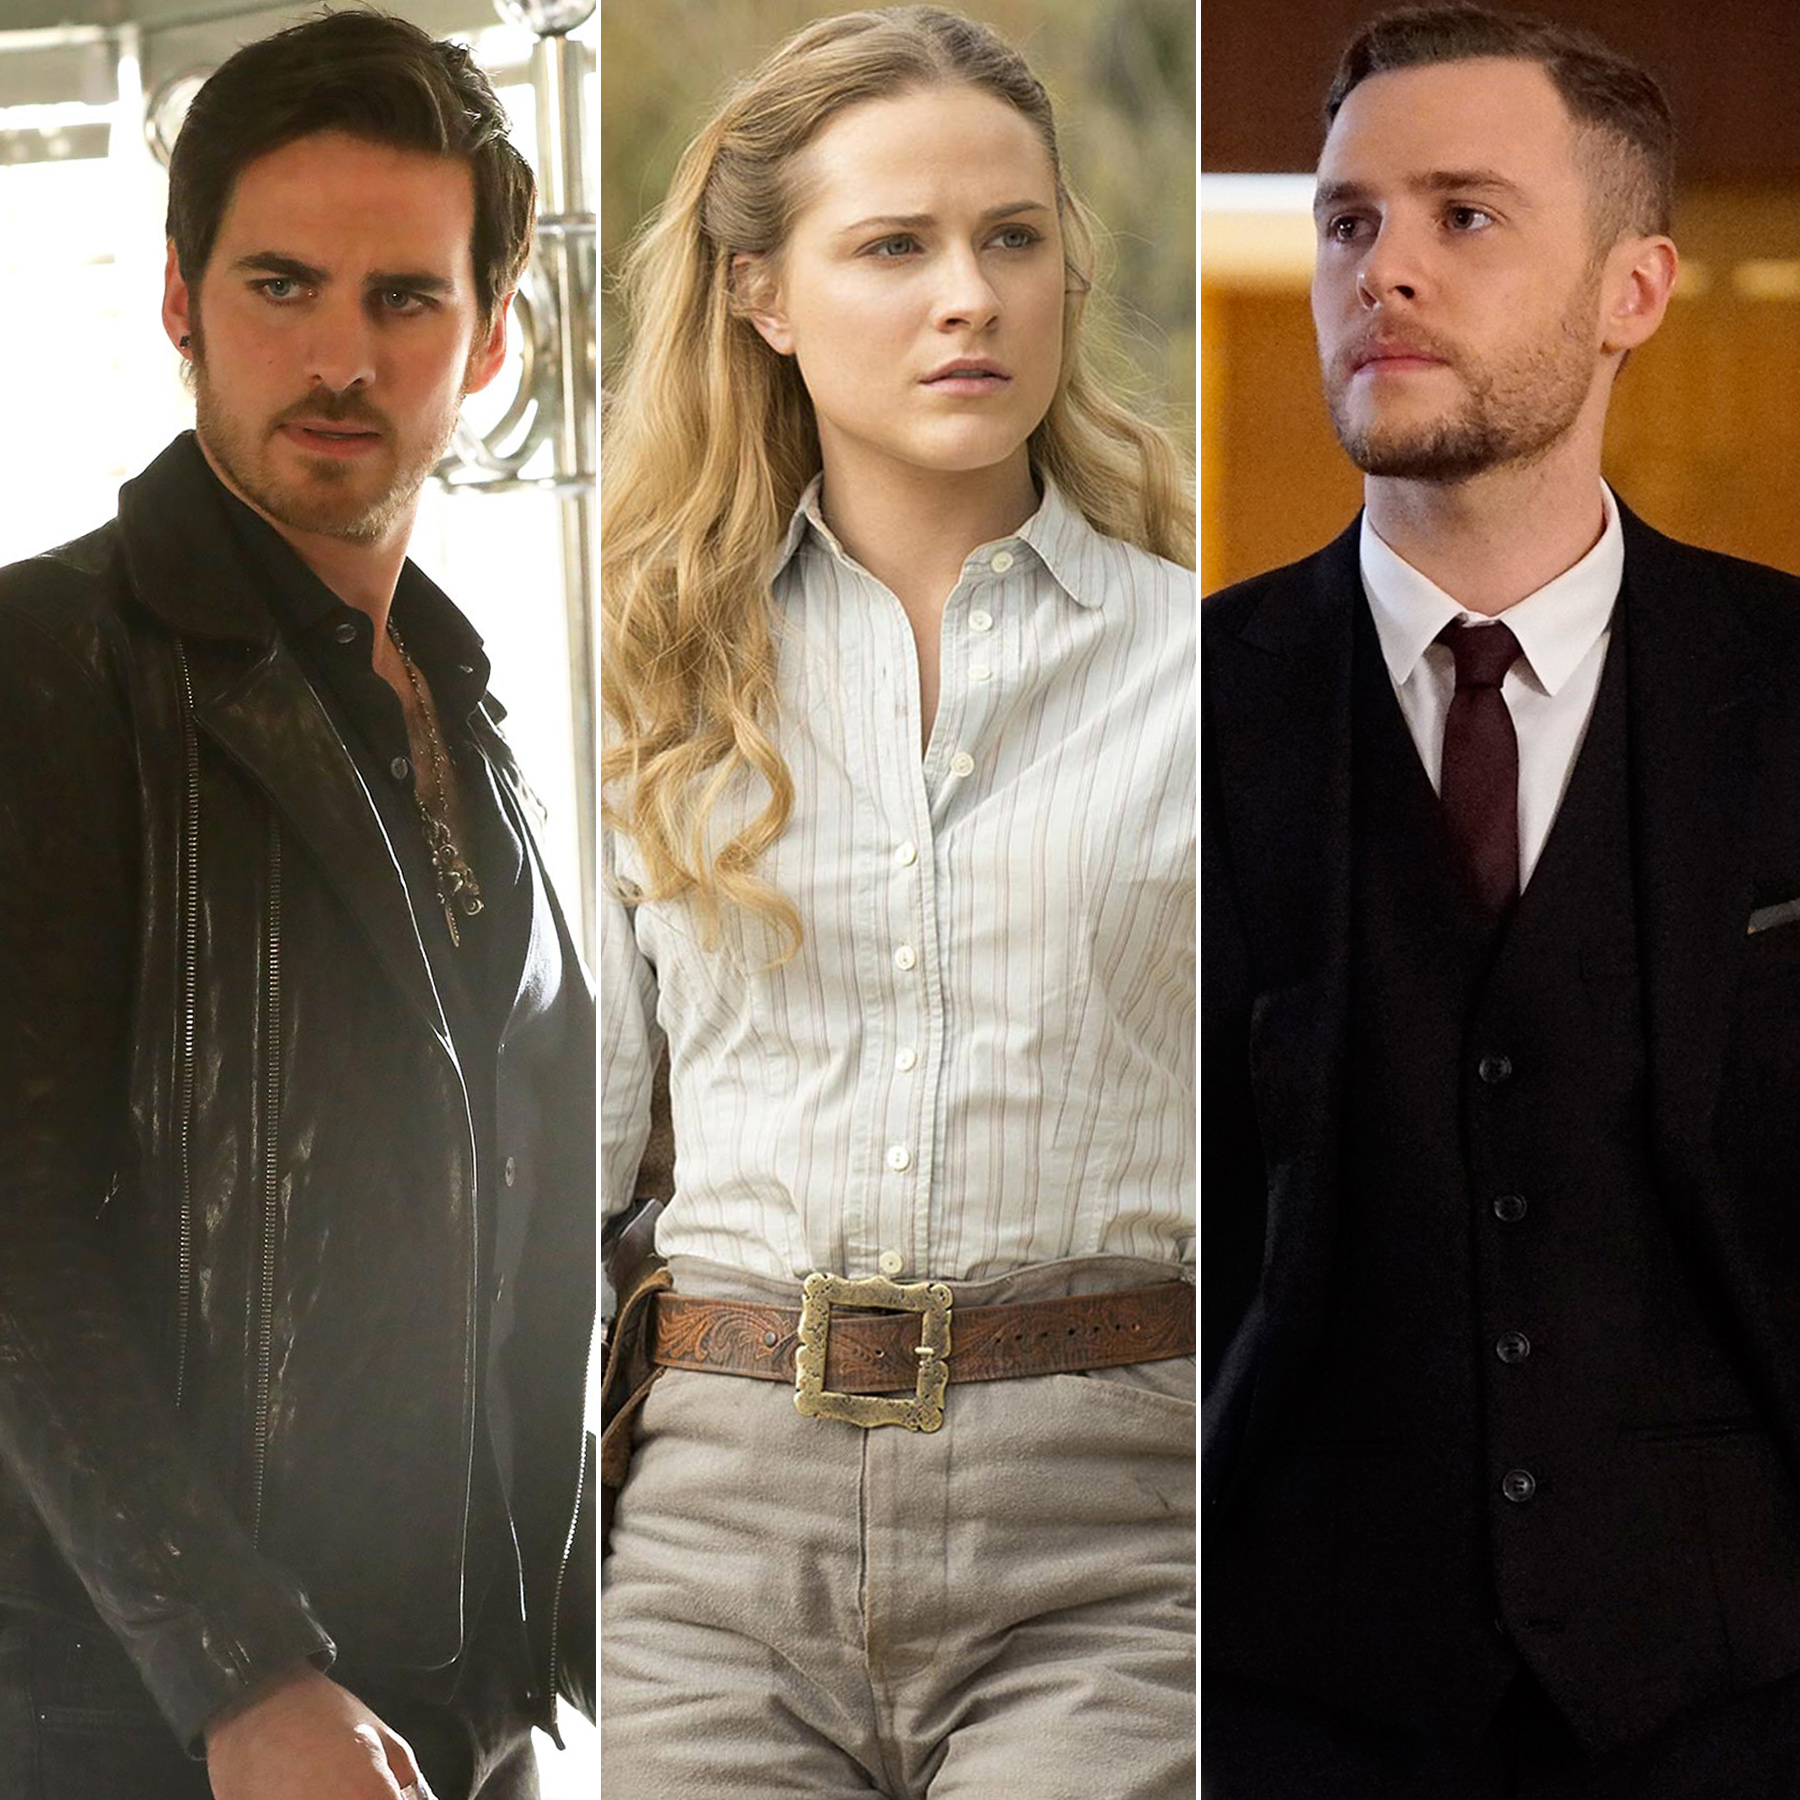 Colin-O'Donoghue on Once Upon a Time, Evan Rachel Wood on Westworld and Ian de Caestecker on Agents of SHIELD